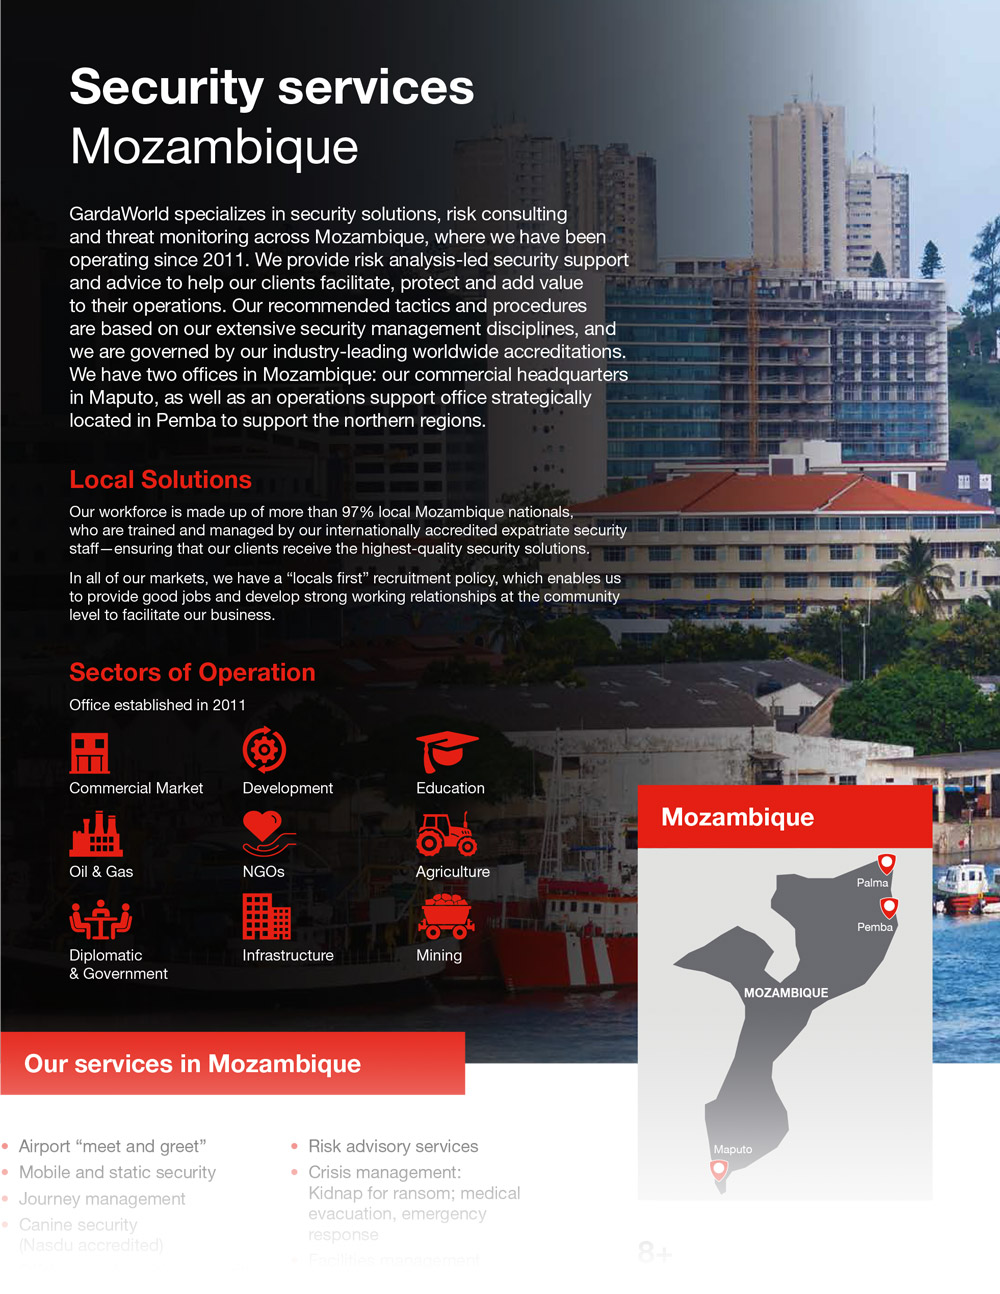 Mozambique Security Services